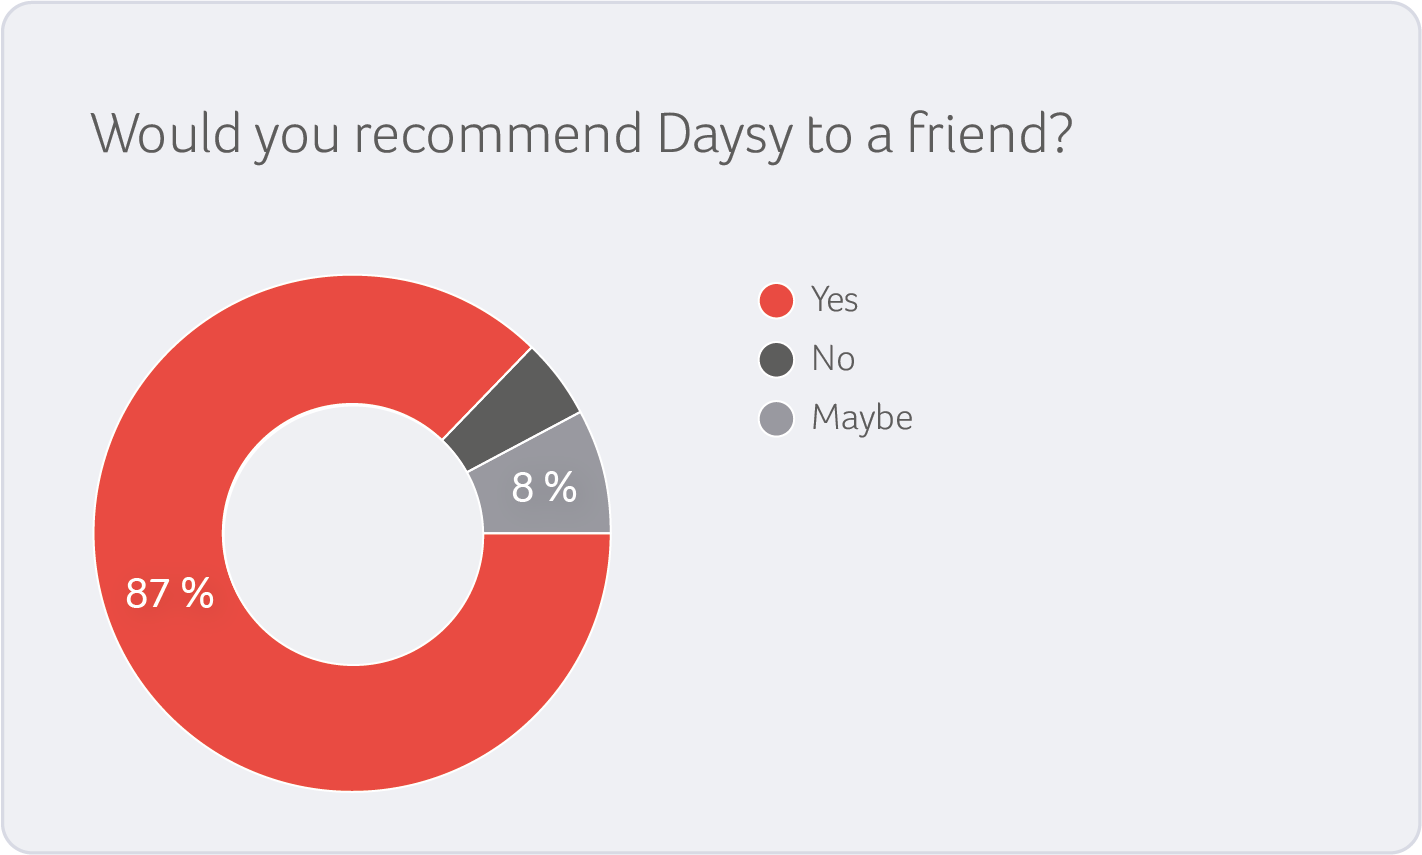 87% would recommend Daysy